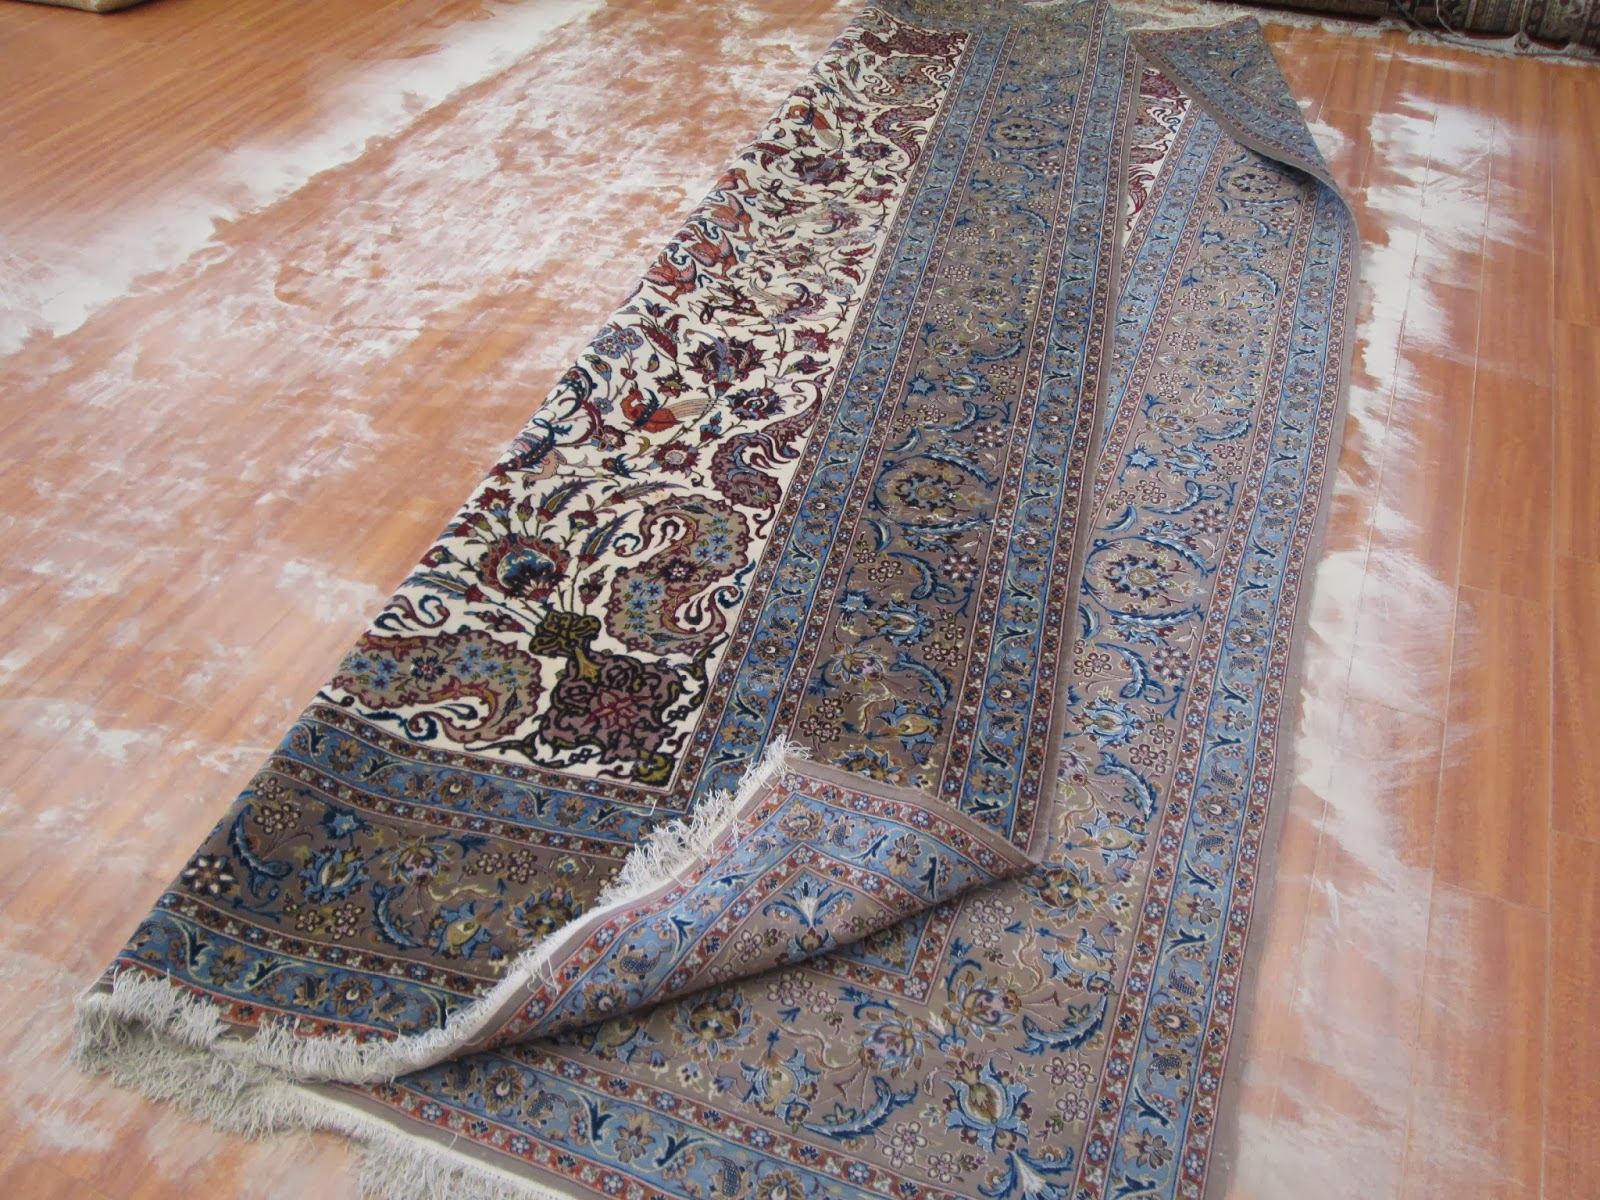 Then They Become Embarred And Say Yes This Rug Is Dirty Letu0027s Clean It